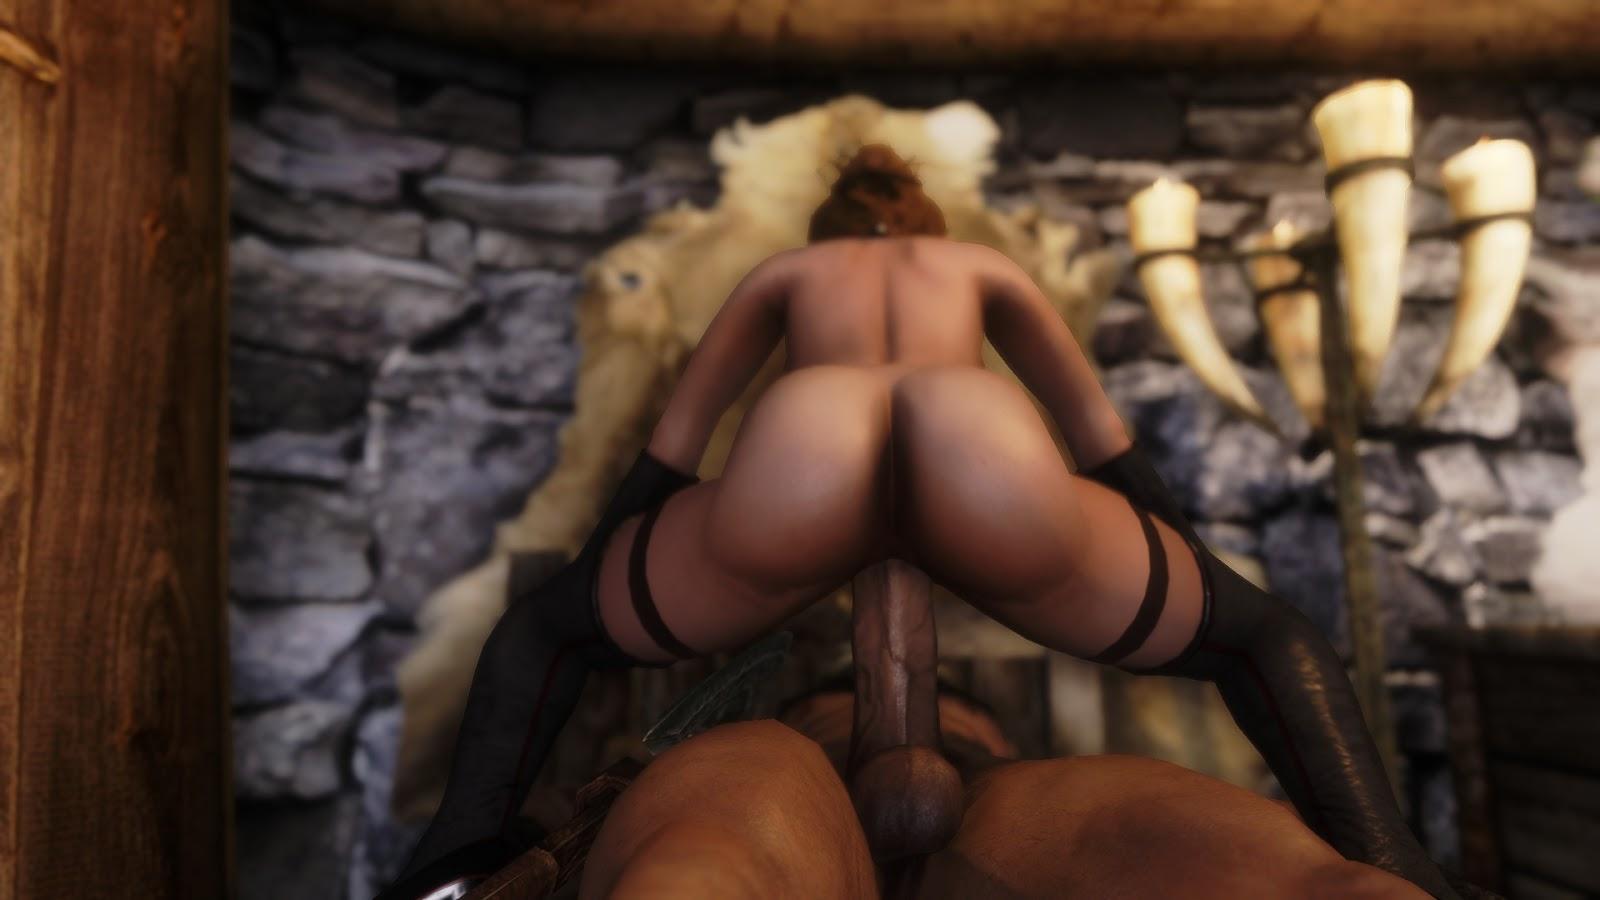 Skyrim adult-only mods sex hardcore adult image